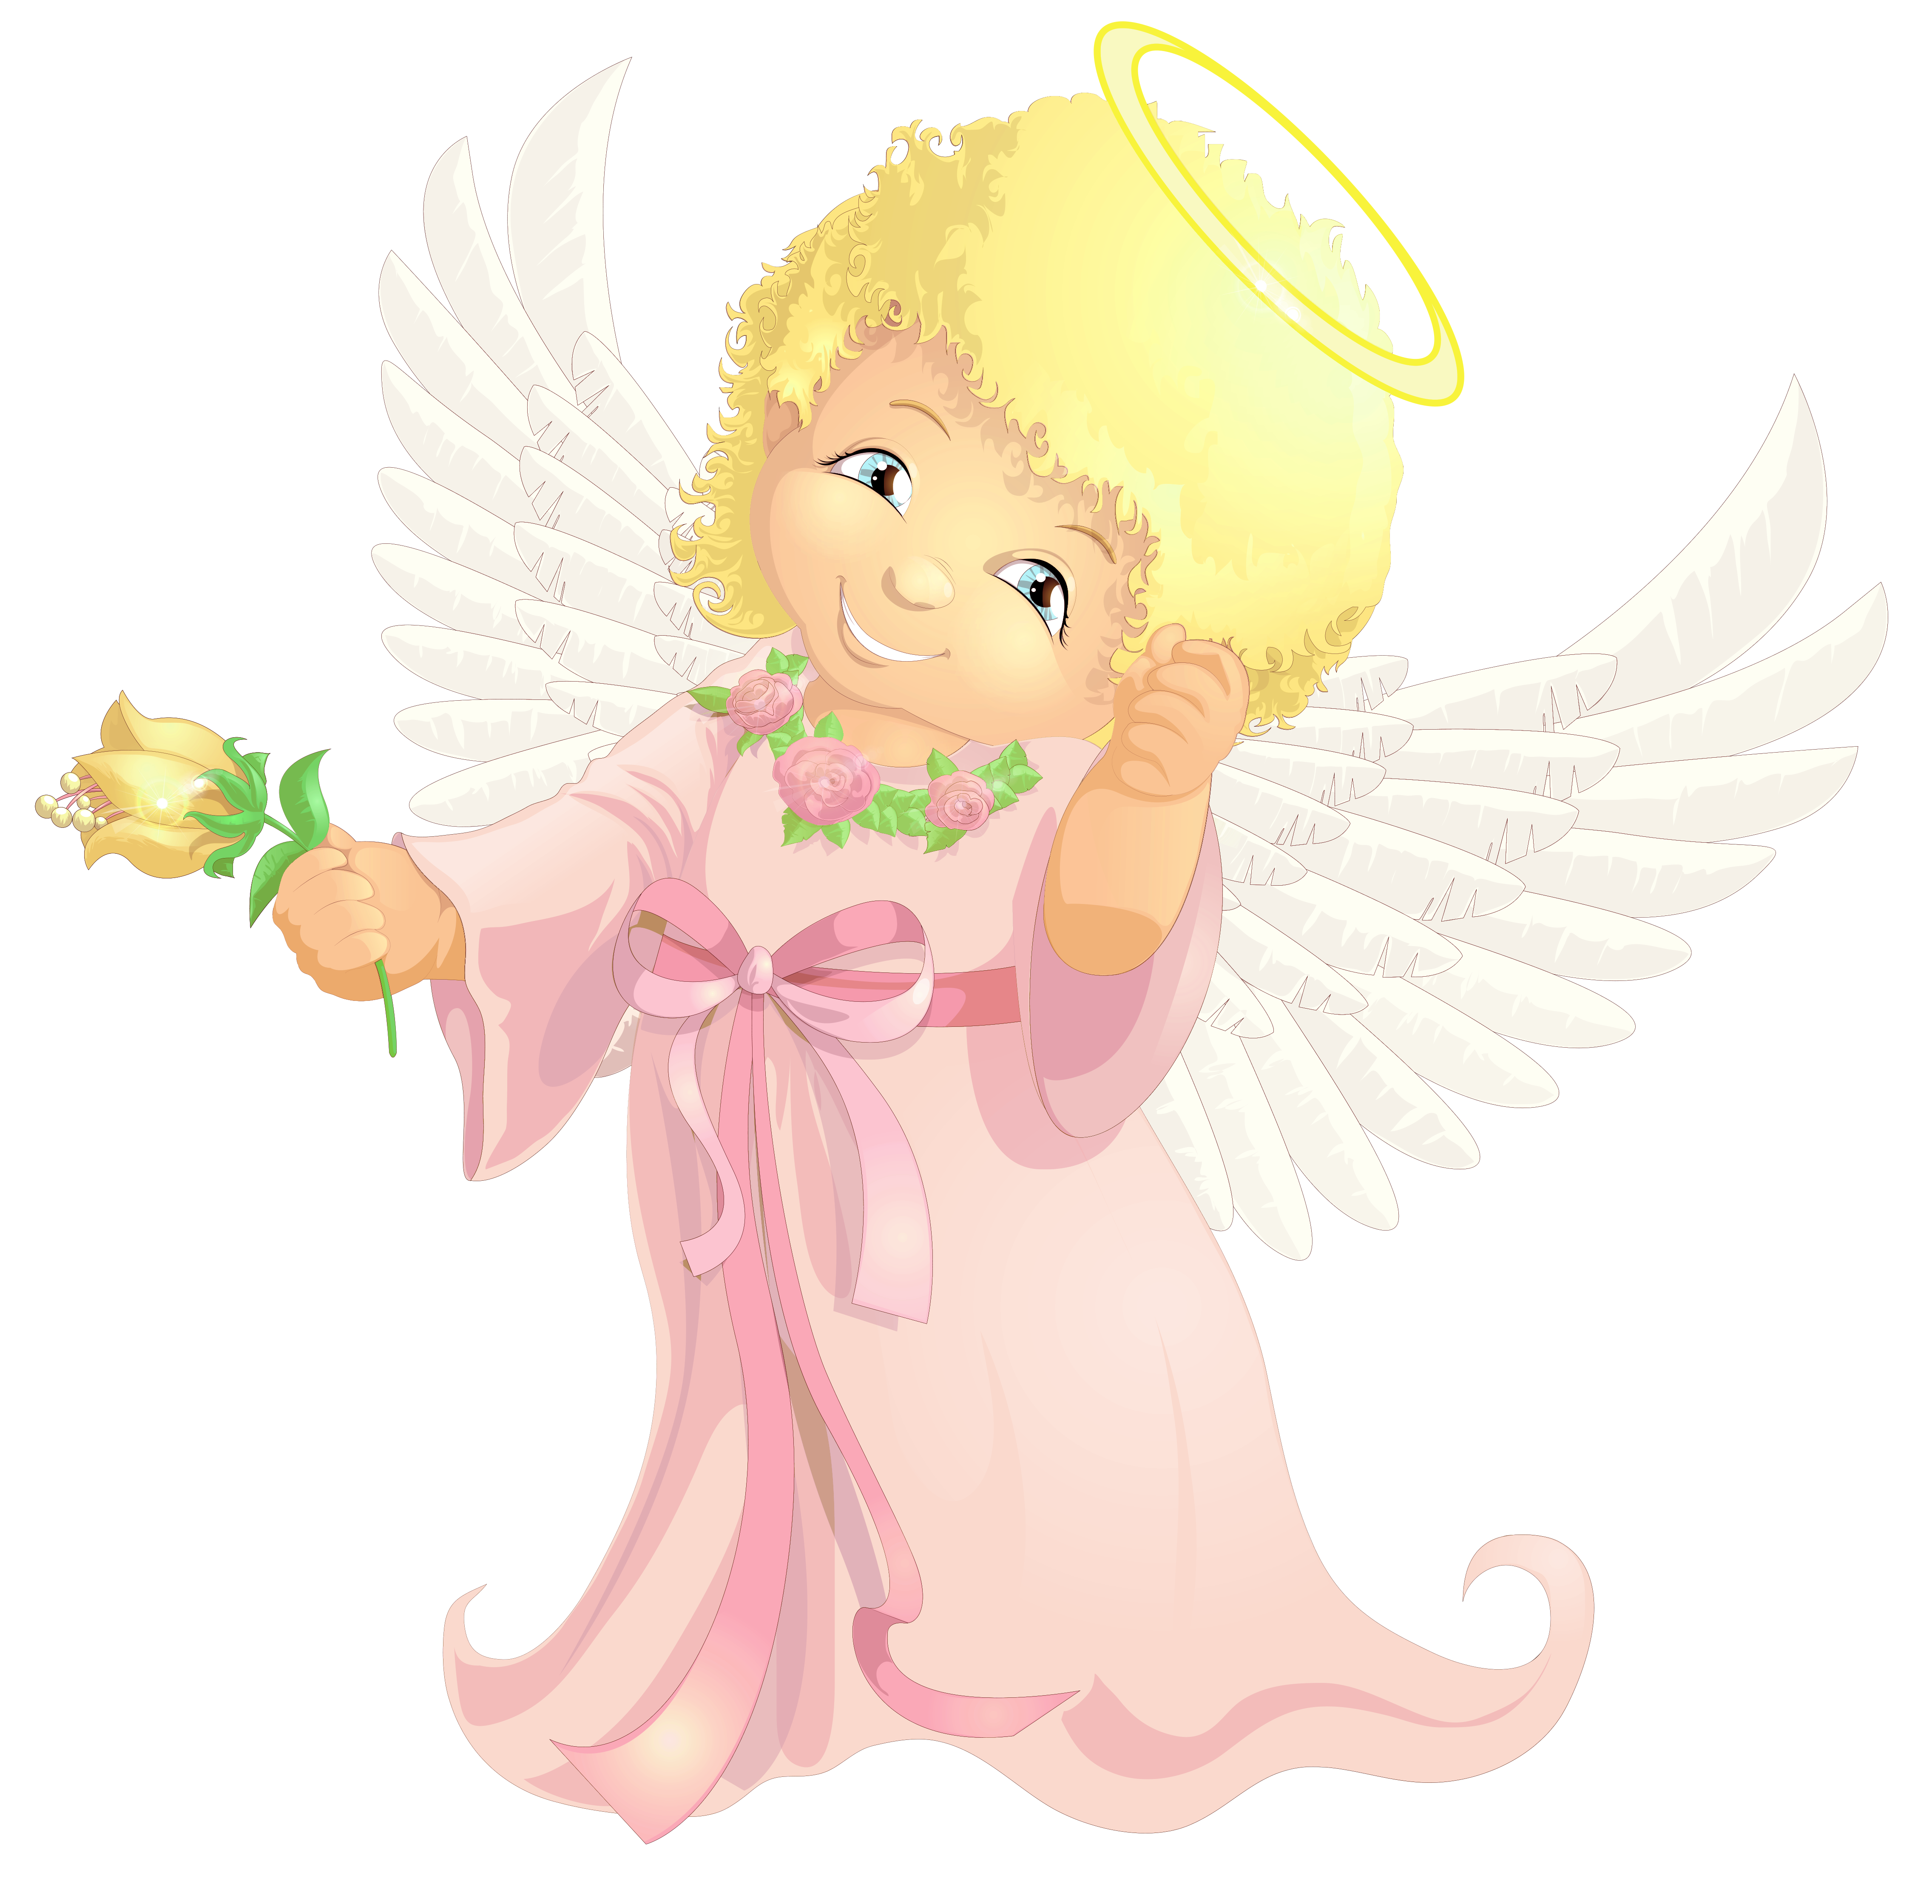 Heaven clipart angel. Png images free download